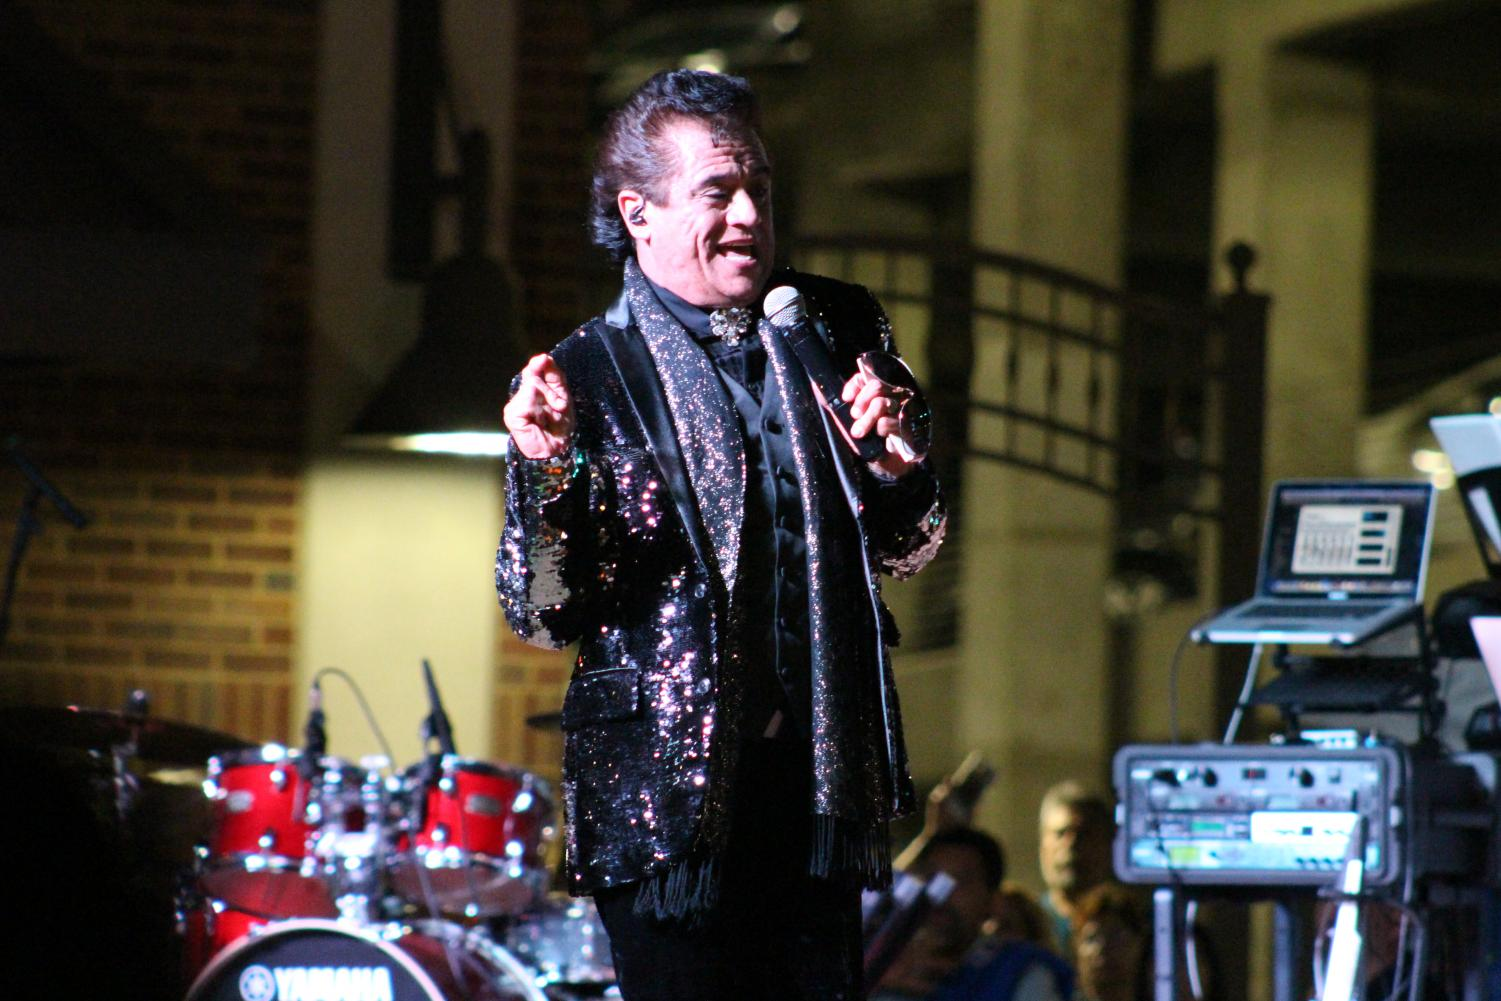 Hugo Cortes interprets Juan Gabriel at the tribute event at San Jacinto Plaza.